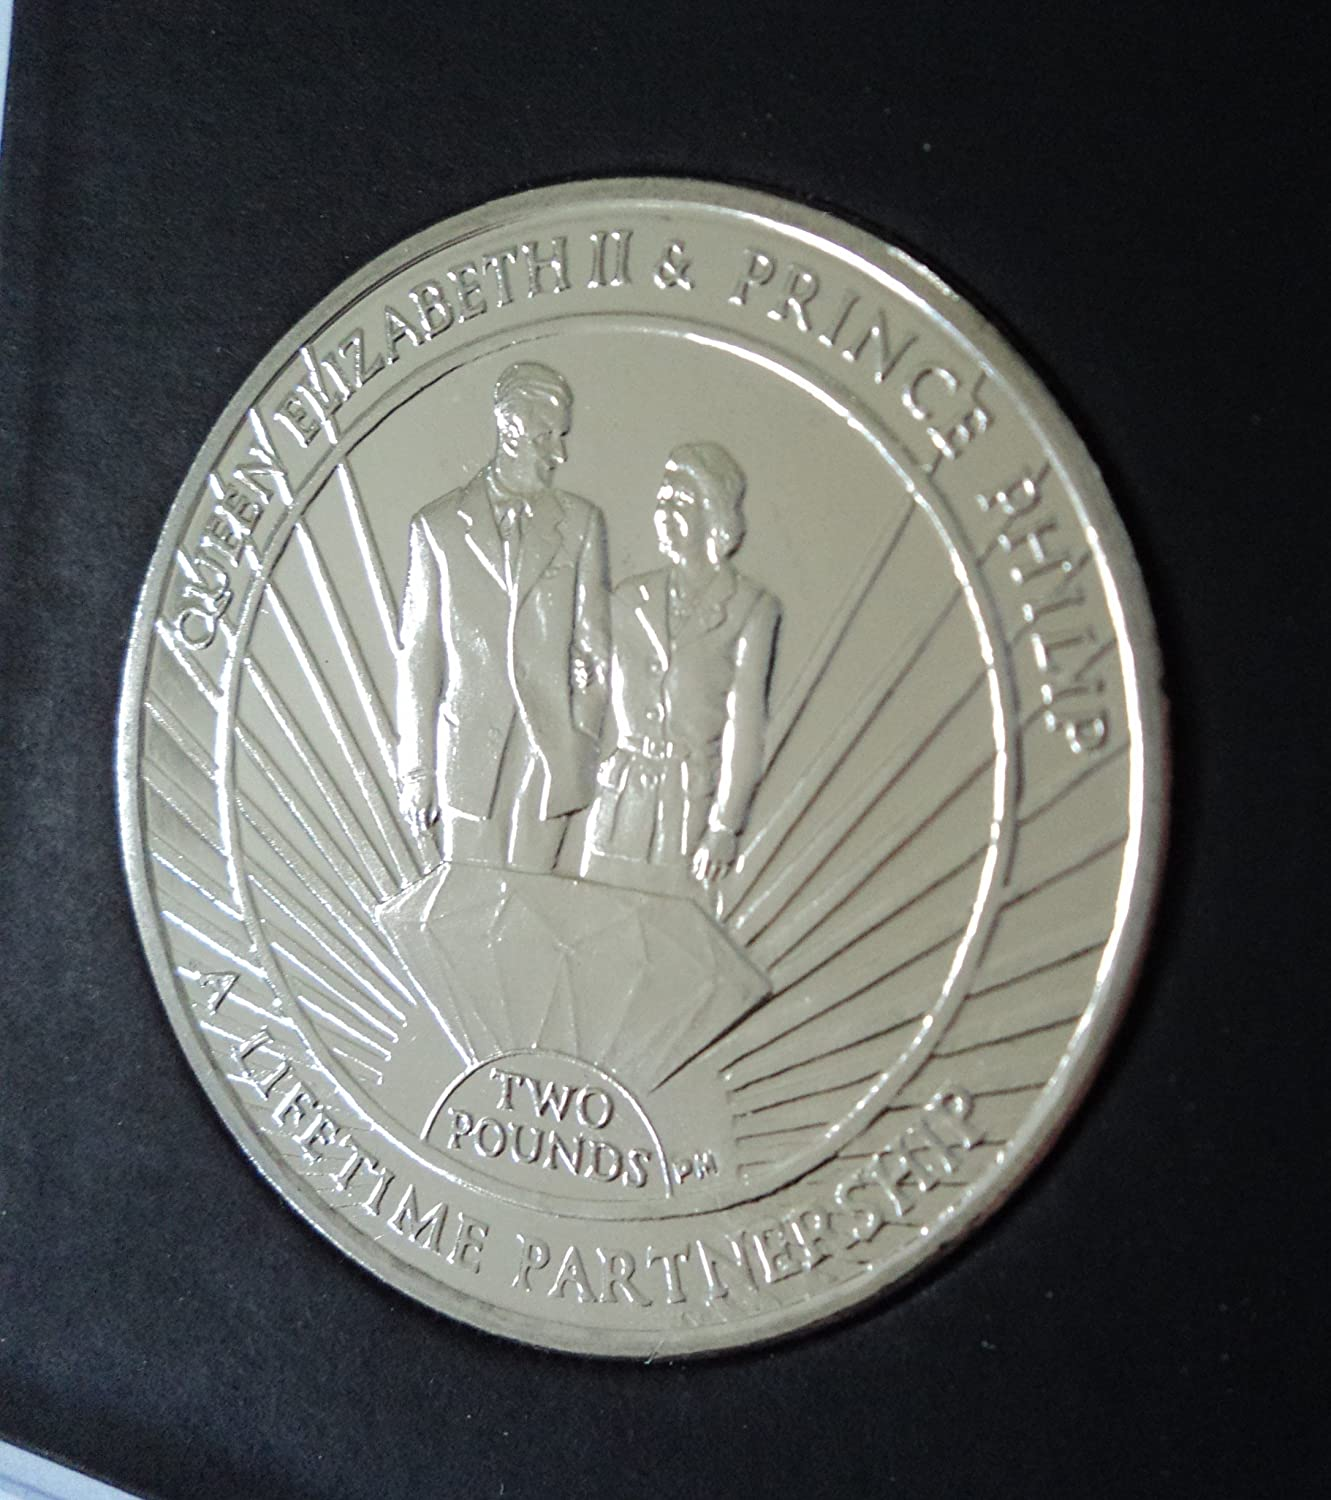 2011 South Georgia & Sandwich Islands Lifetime Partnership of Queen Elizabeth II and Prince Philip  2 Coin (BU) Collector Gift Set in Display Case